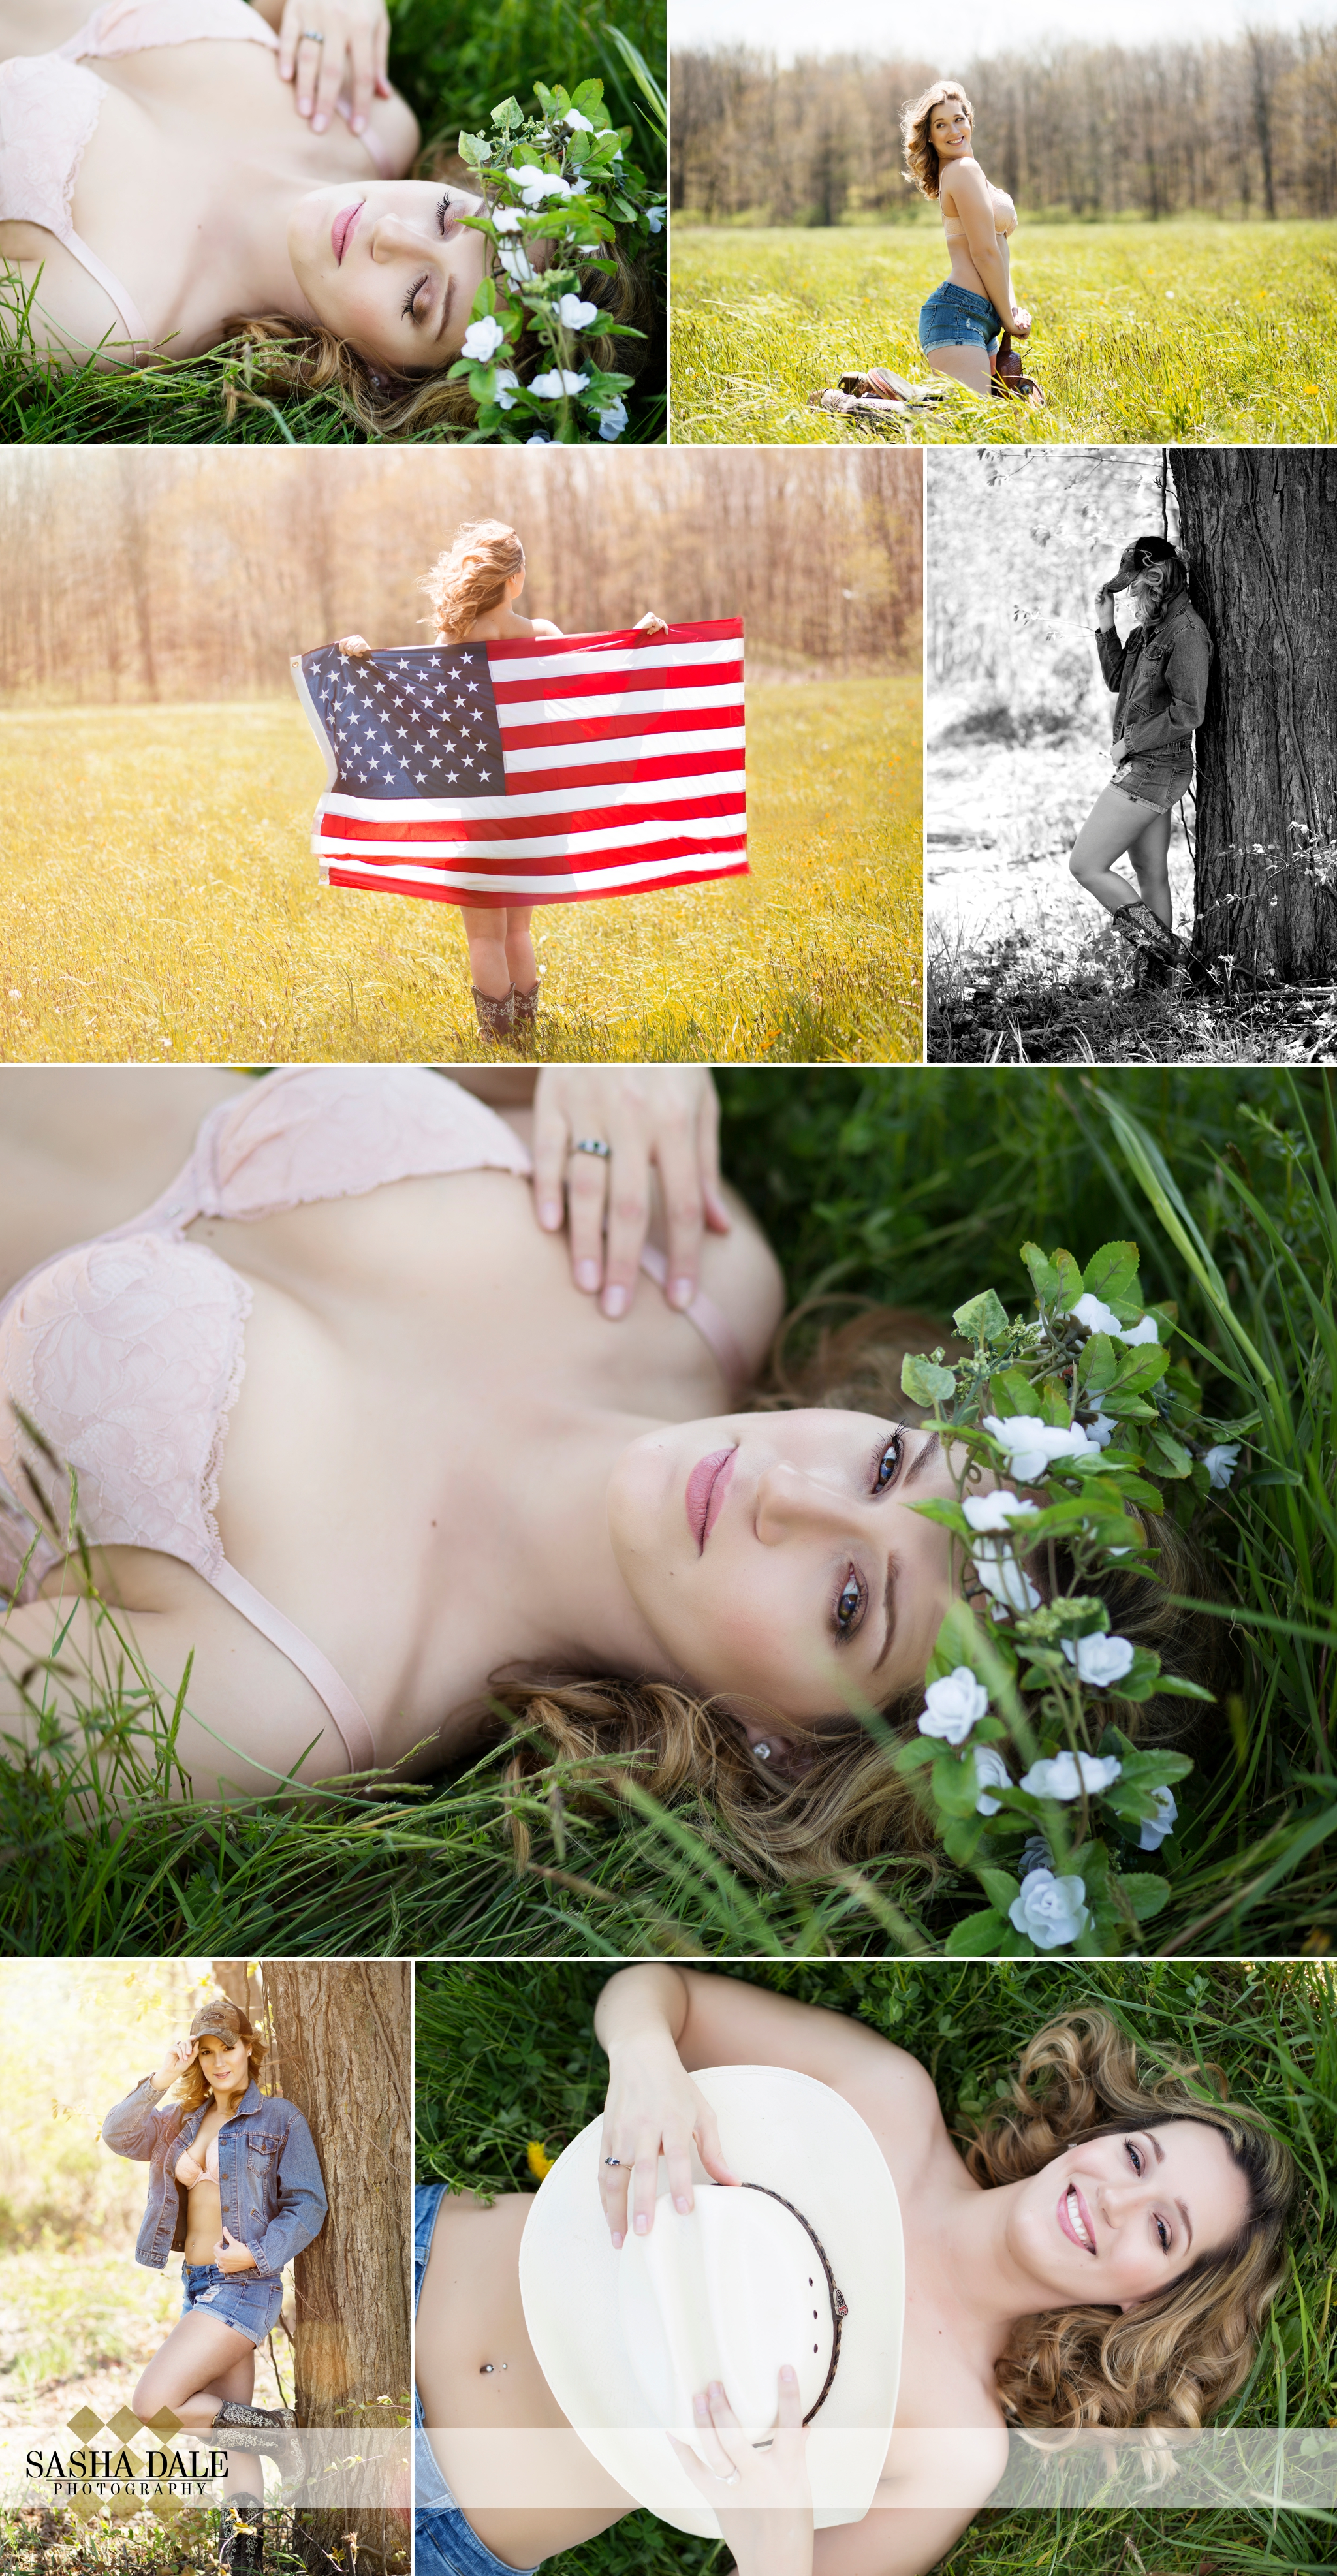 Outdoor boudoir, cowgirl, cowboy boots, new preston ct, connecticut boudoir photographer, american flag, americana